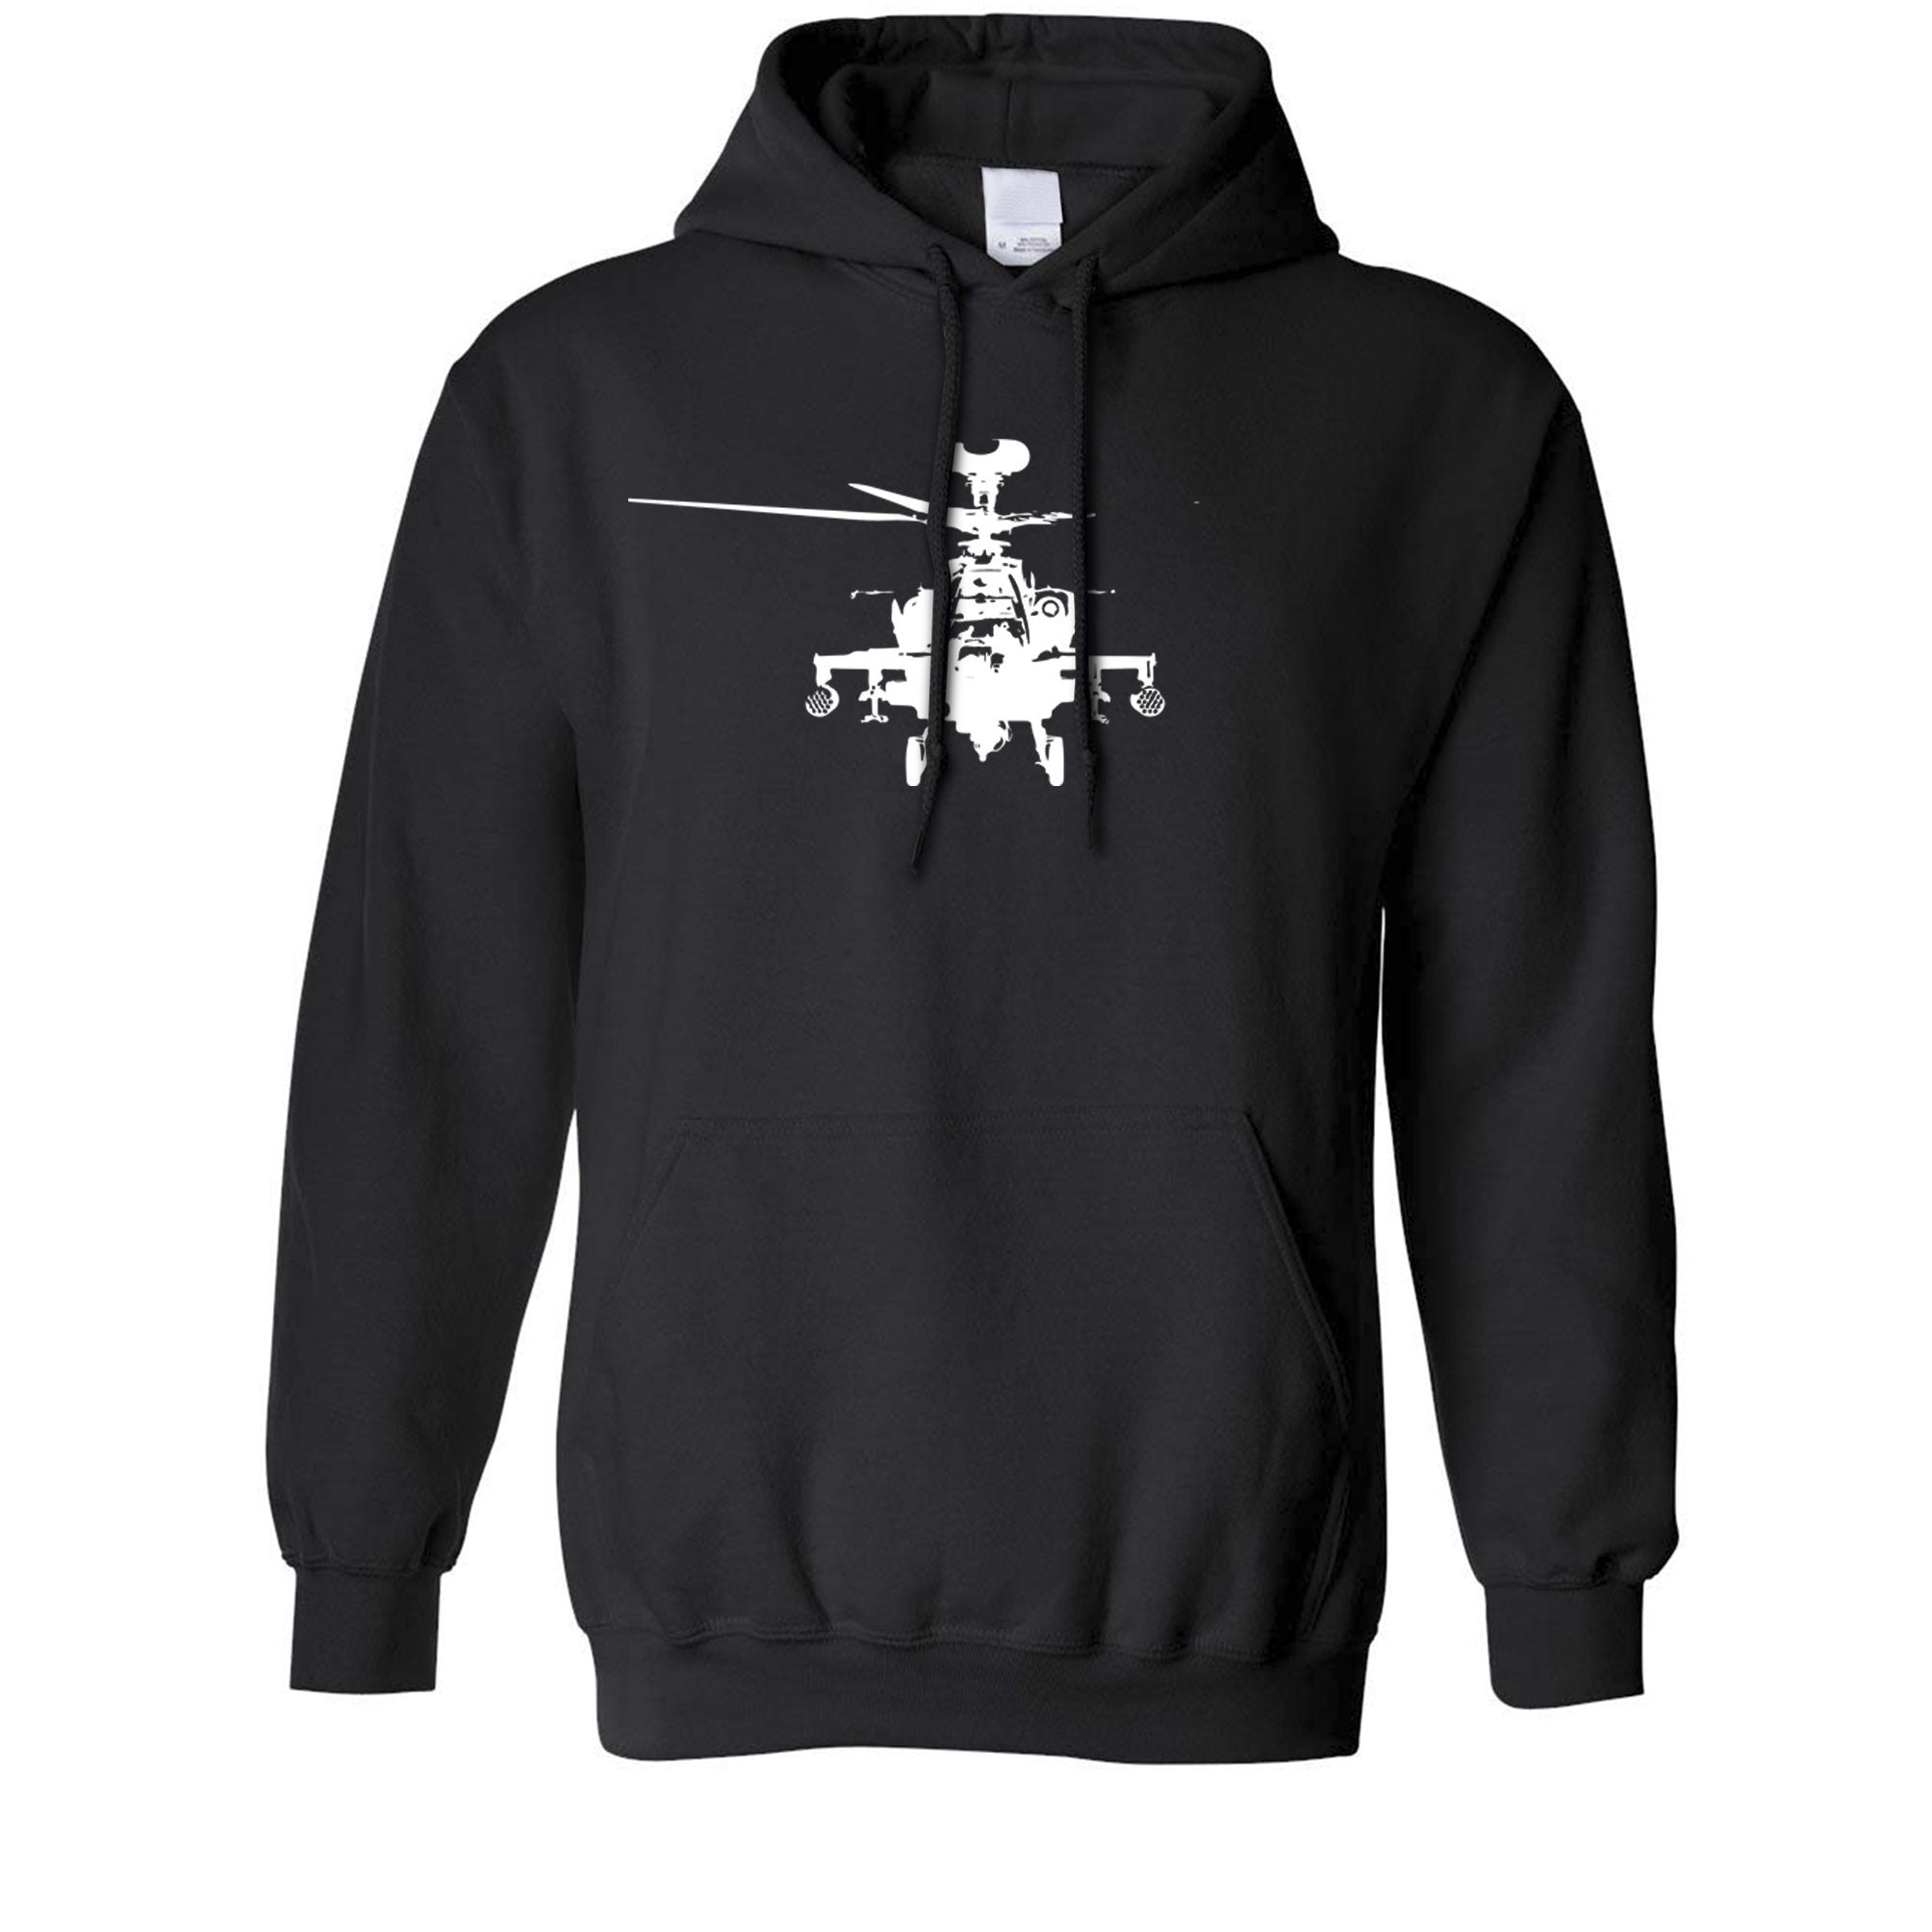 Military Hoodie Apache Attack Helicopter AH64 Hooded Jumper